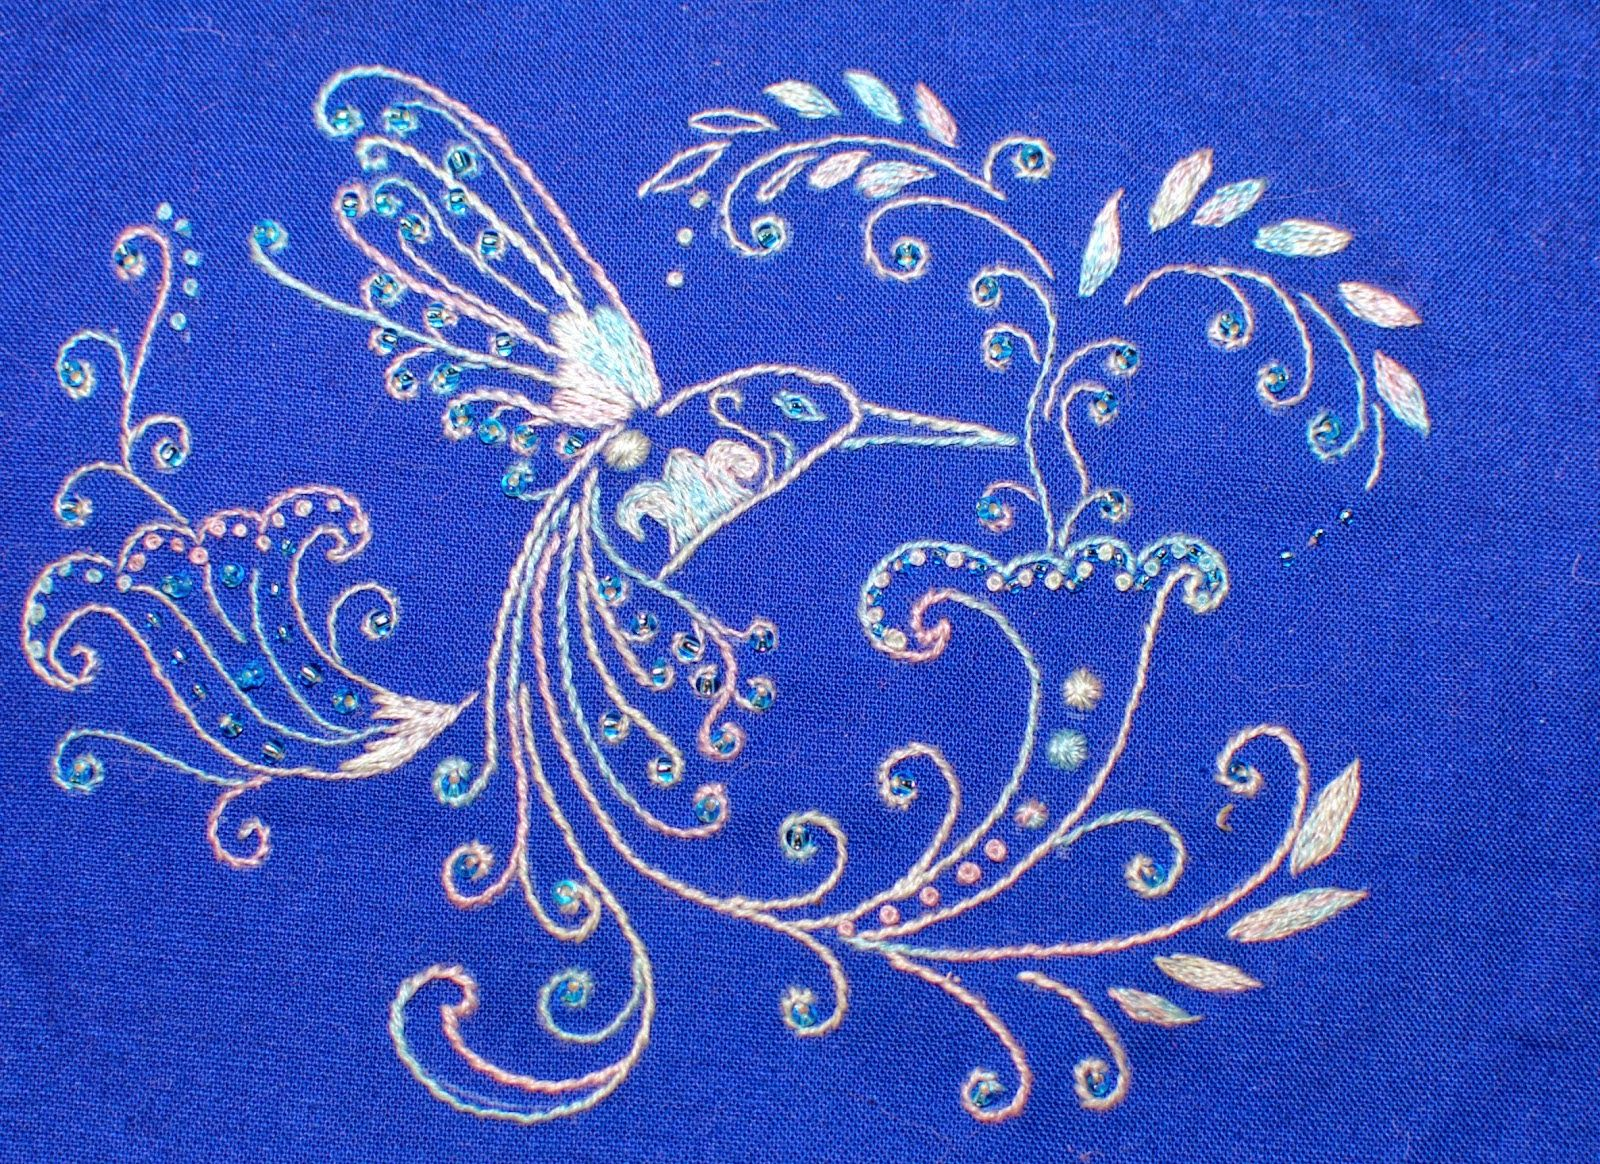 design | ANIMALES | Pinterest | Embroidery